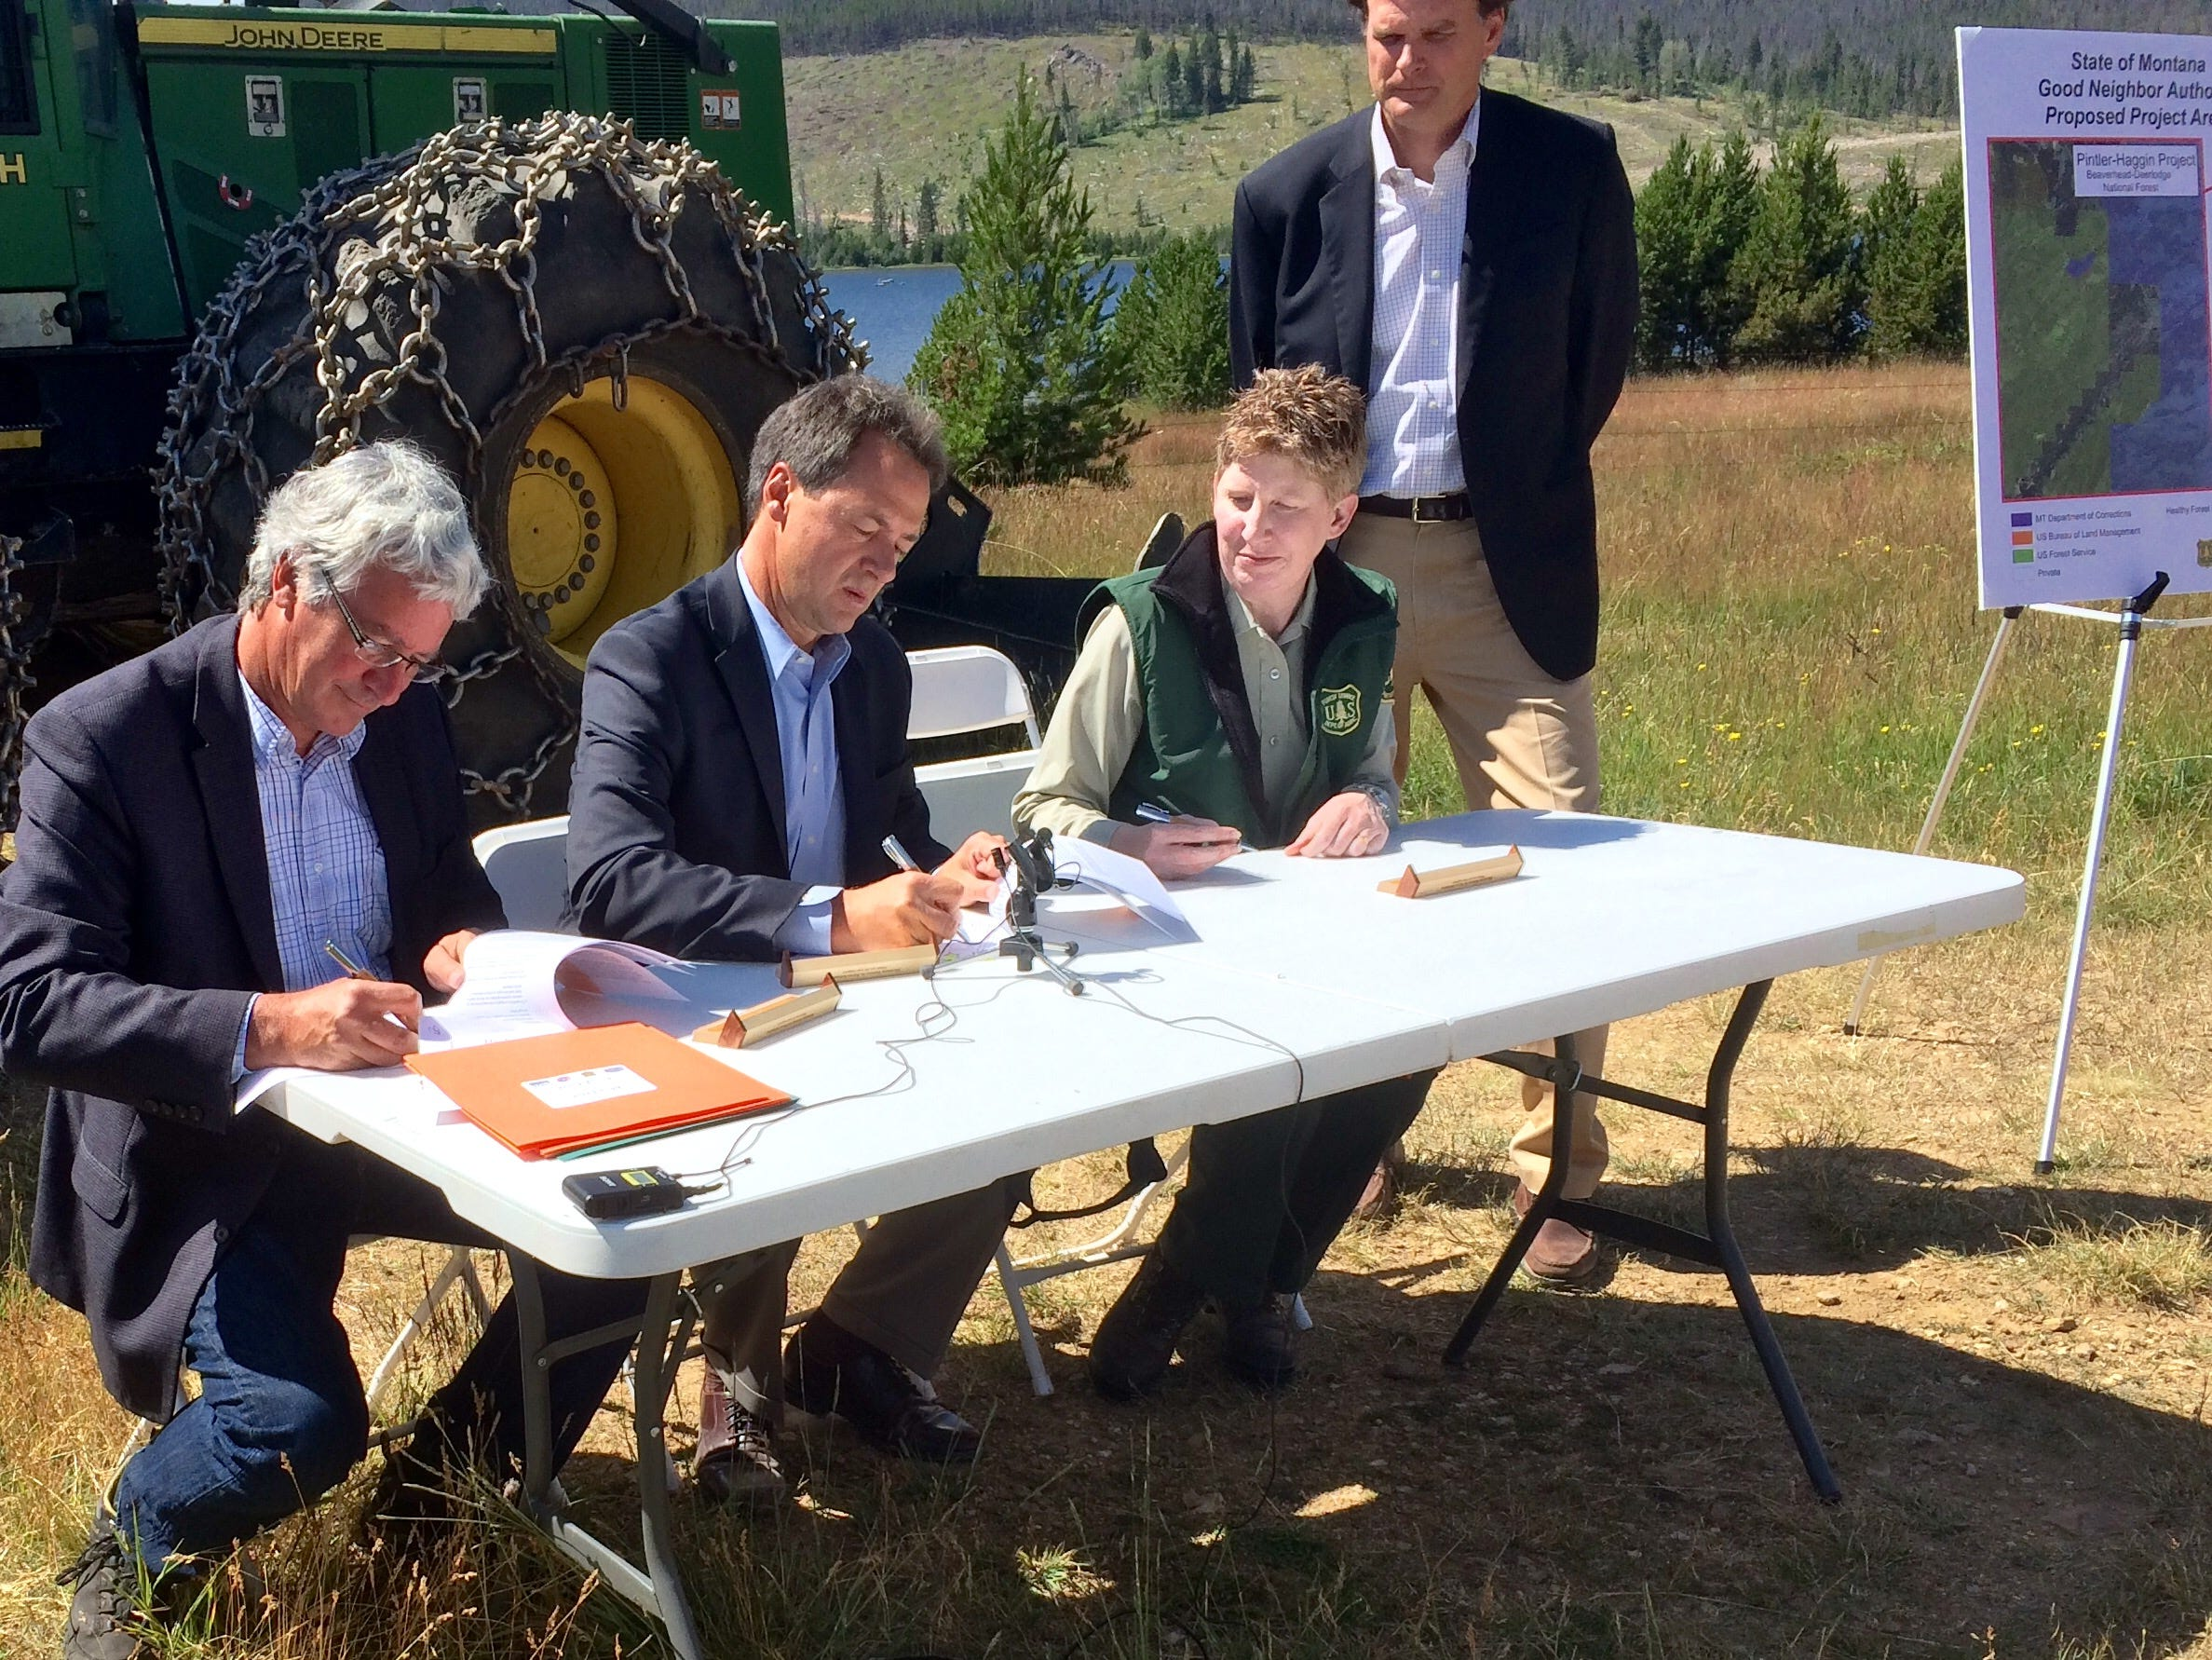 Tribune photo/Phil Drake John Tubbs, left, signs a Good Neighbor Agreement on Monday. Also pictured are Gov. Steve Bullock, Leanne Marten and Robert Bonnie.